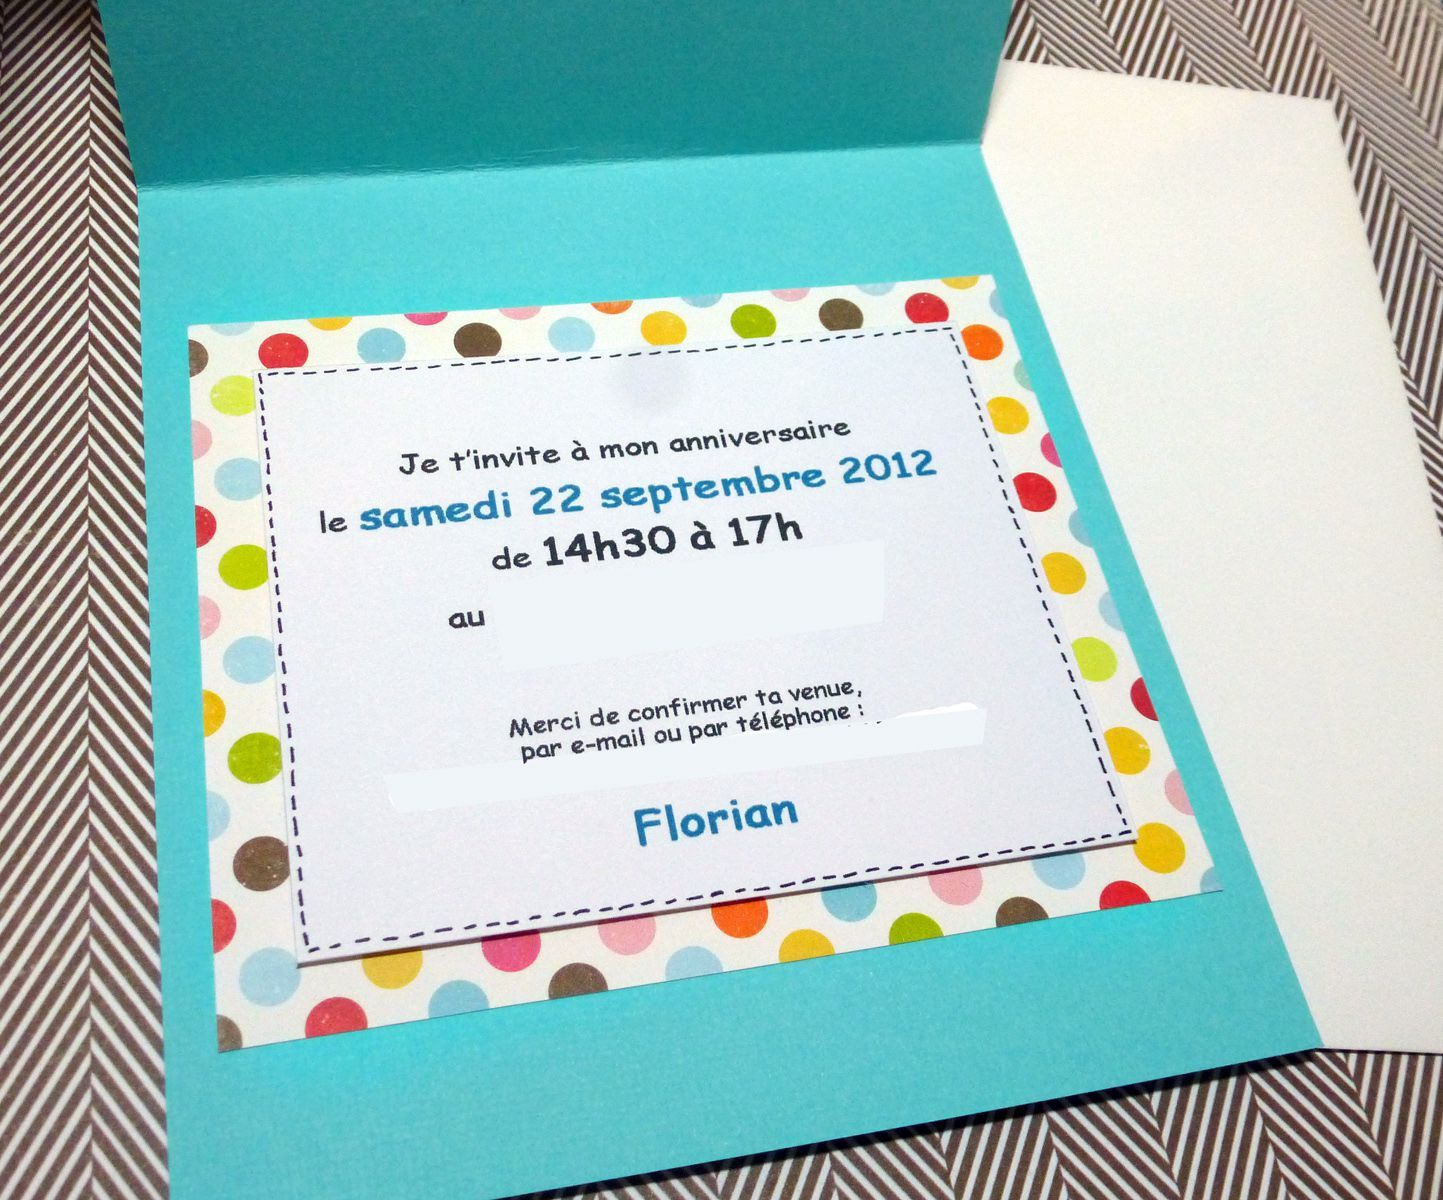 Bien-aimé carte d invitation anniversaire ado | INVITATIONS | Pinterest YF27